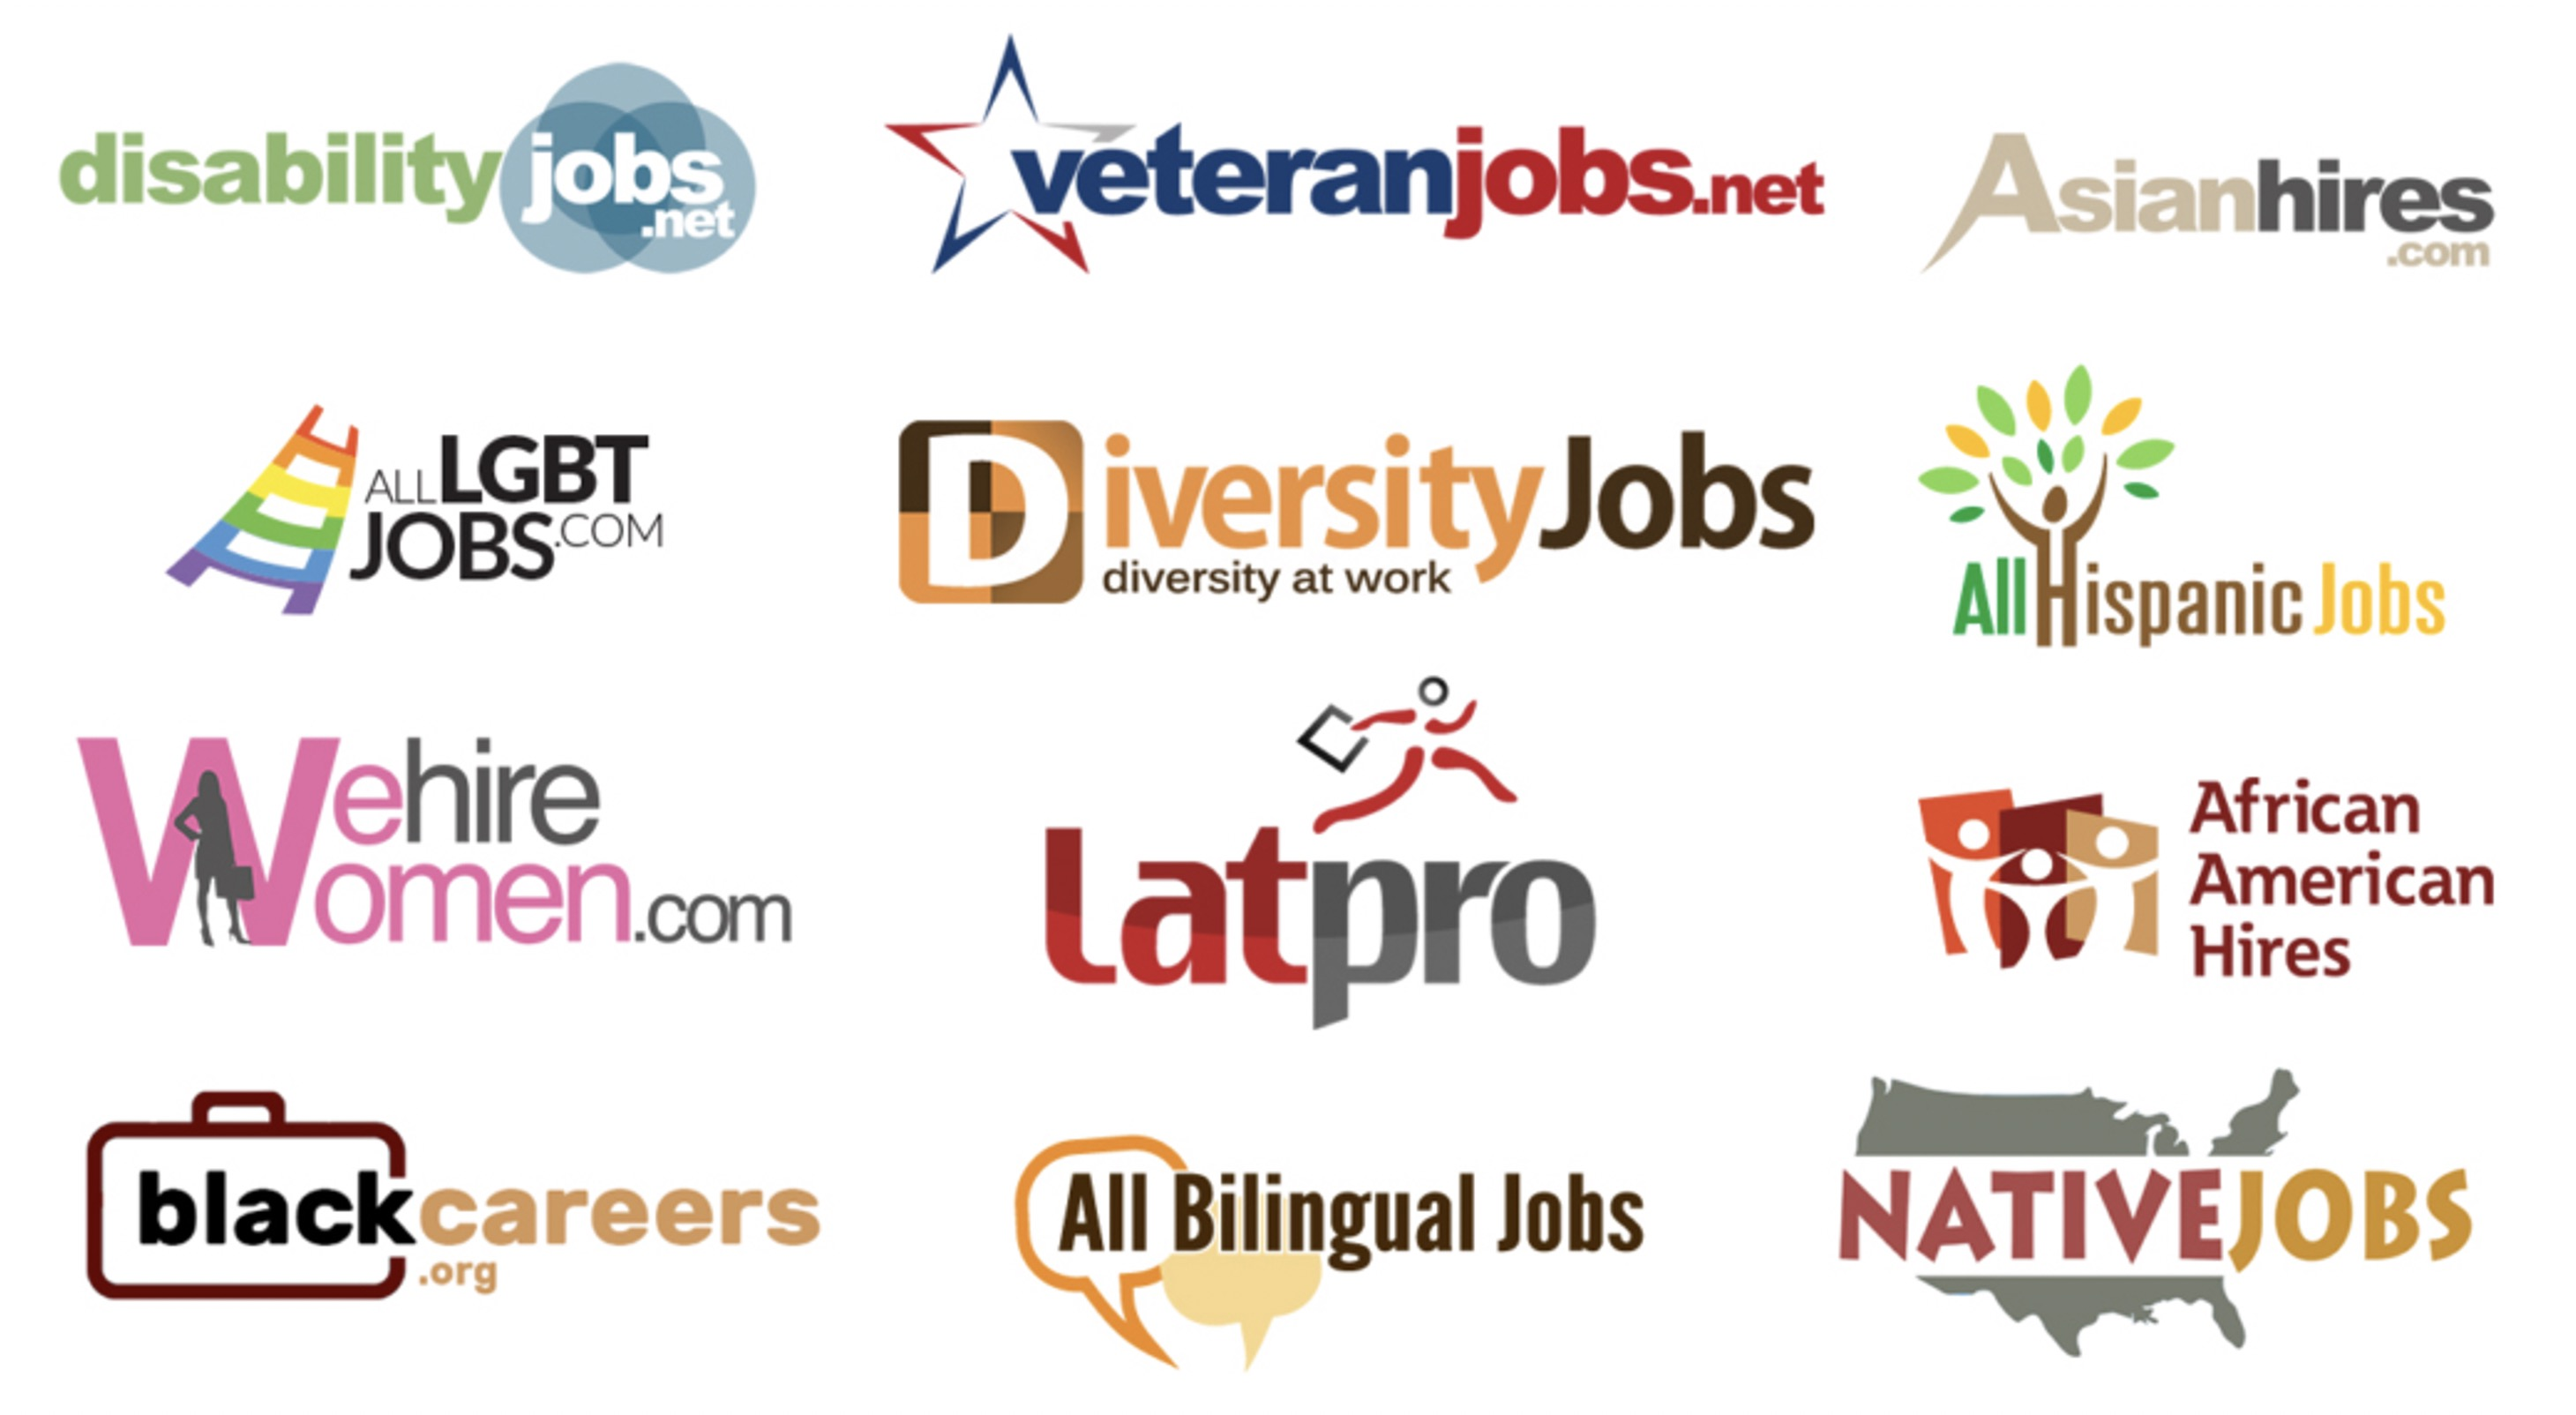 Grid of logos showing different job sites for various racial minorities and other kinds of groups, like disabilities, veterans, and LGBT